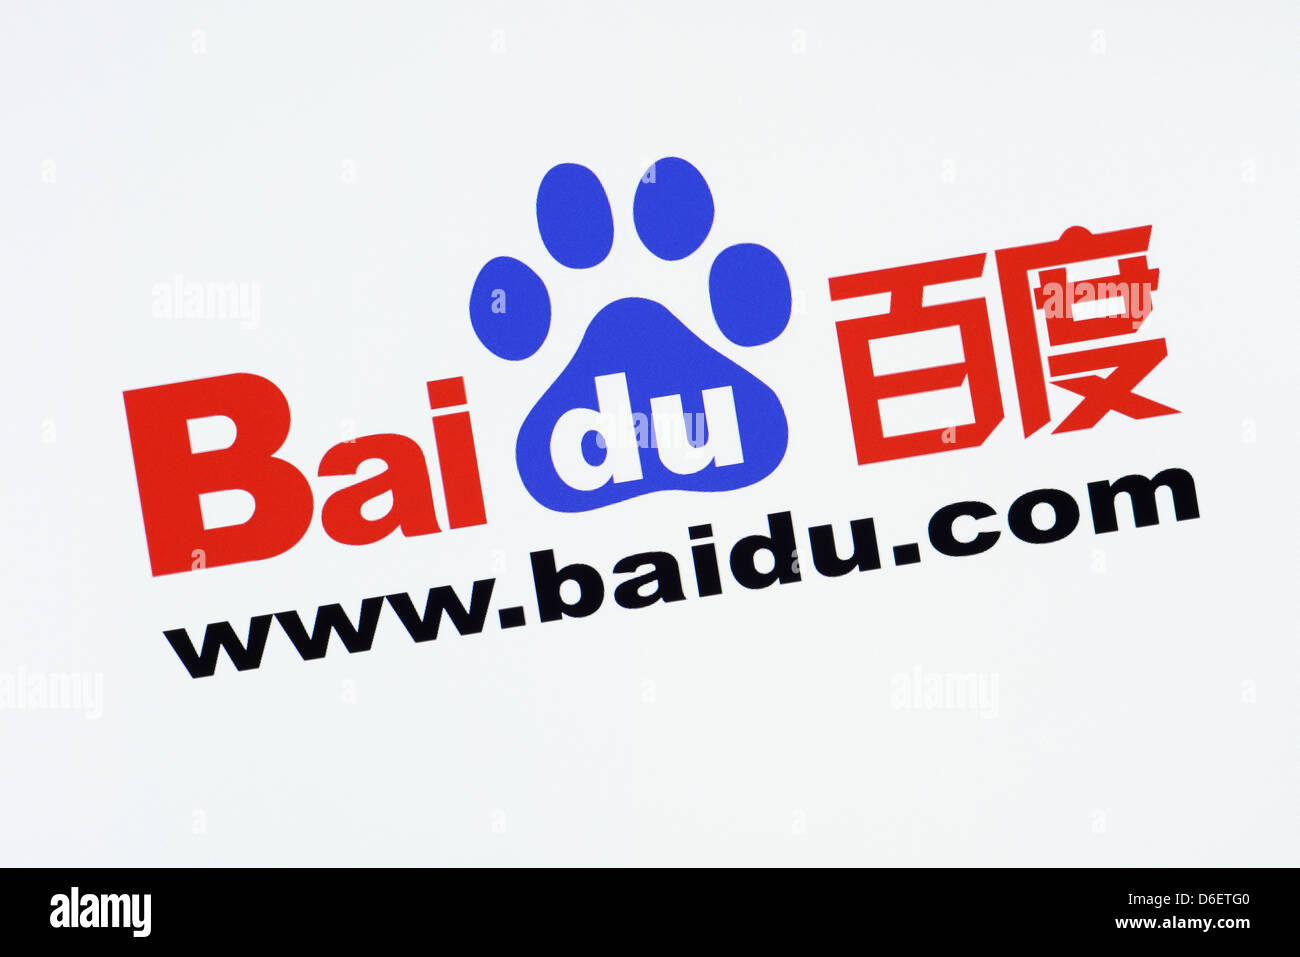 Baidu Search Engine and Web Services Screenshot - Stock Image